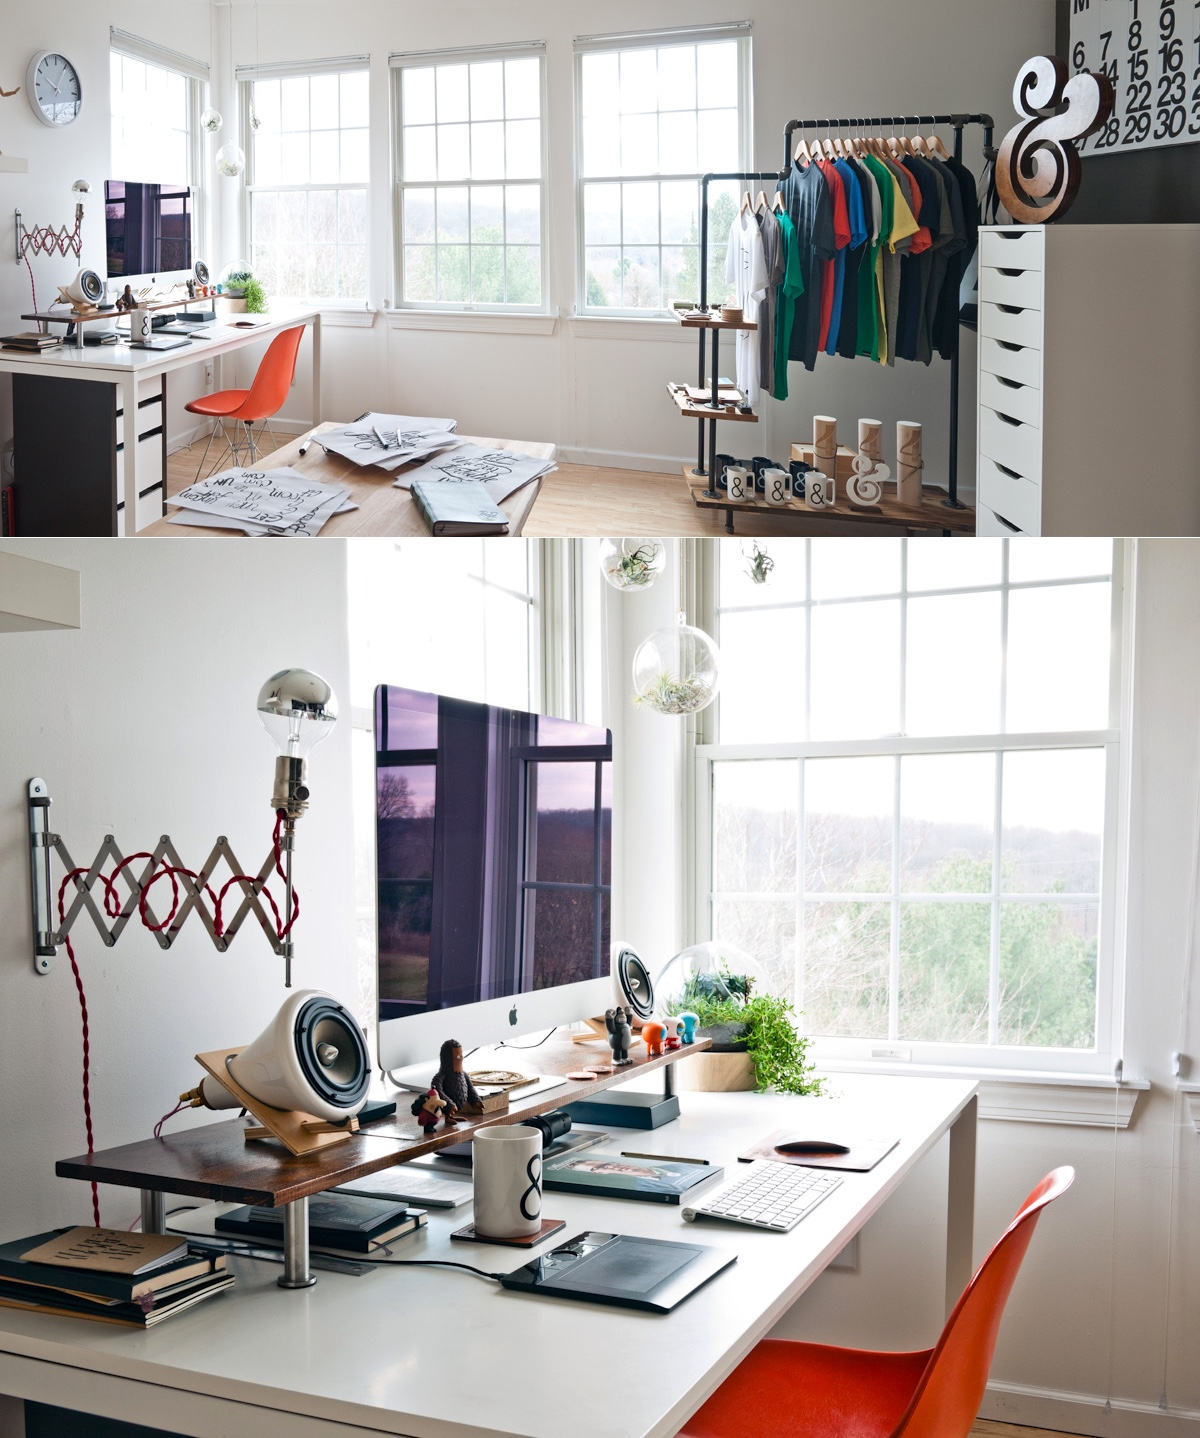 Home Office Decorating Ideas: Creative And Inspirational Workspaces